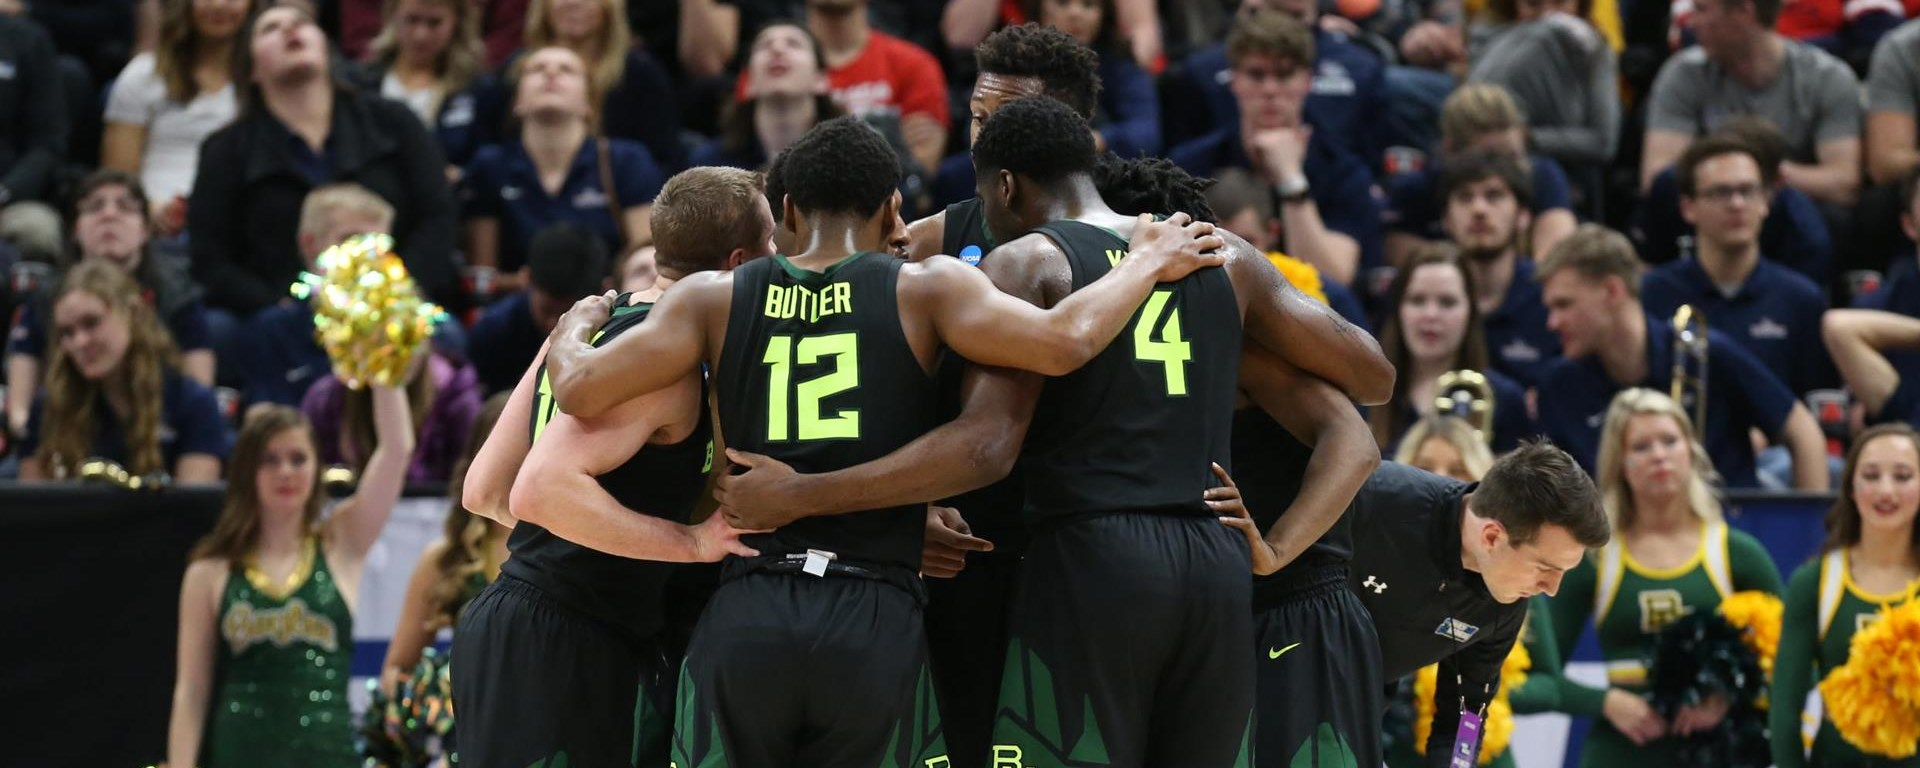 newest 2c96a 63339 MBB Challenges Gonzaga in NCAA Second Round